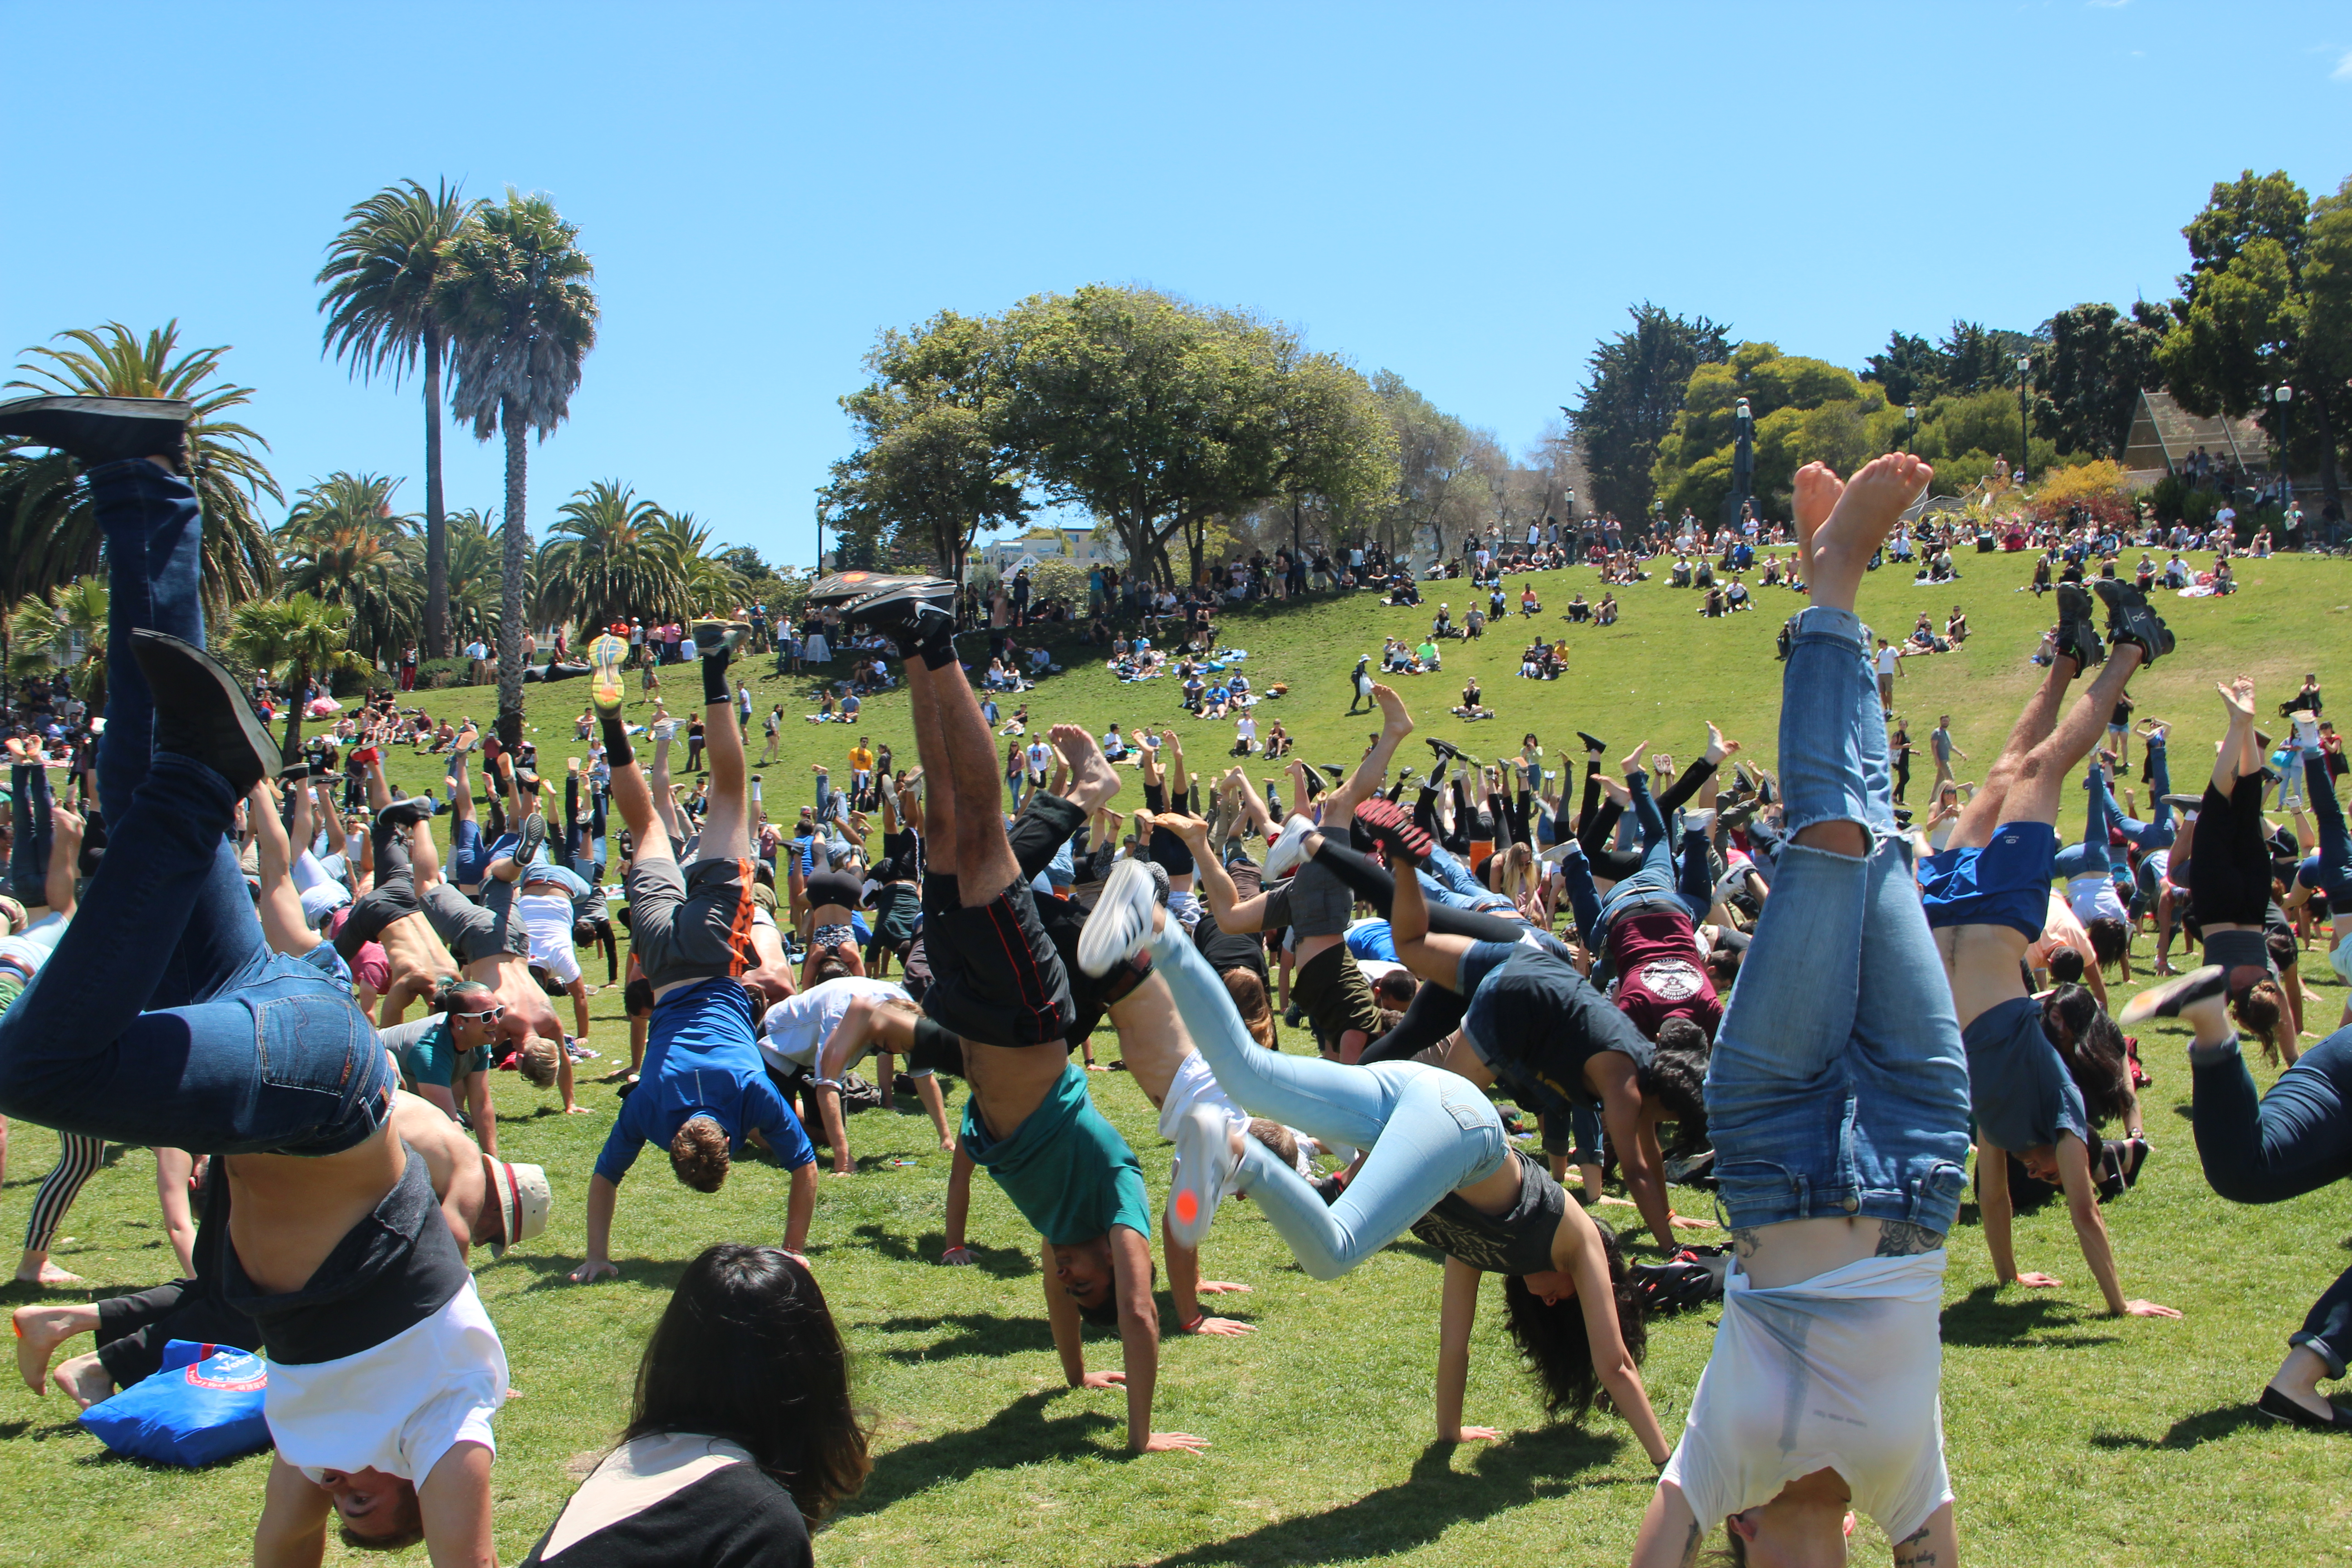 Updated: 427 people do handstands in Dolores Park to break a world record